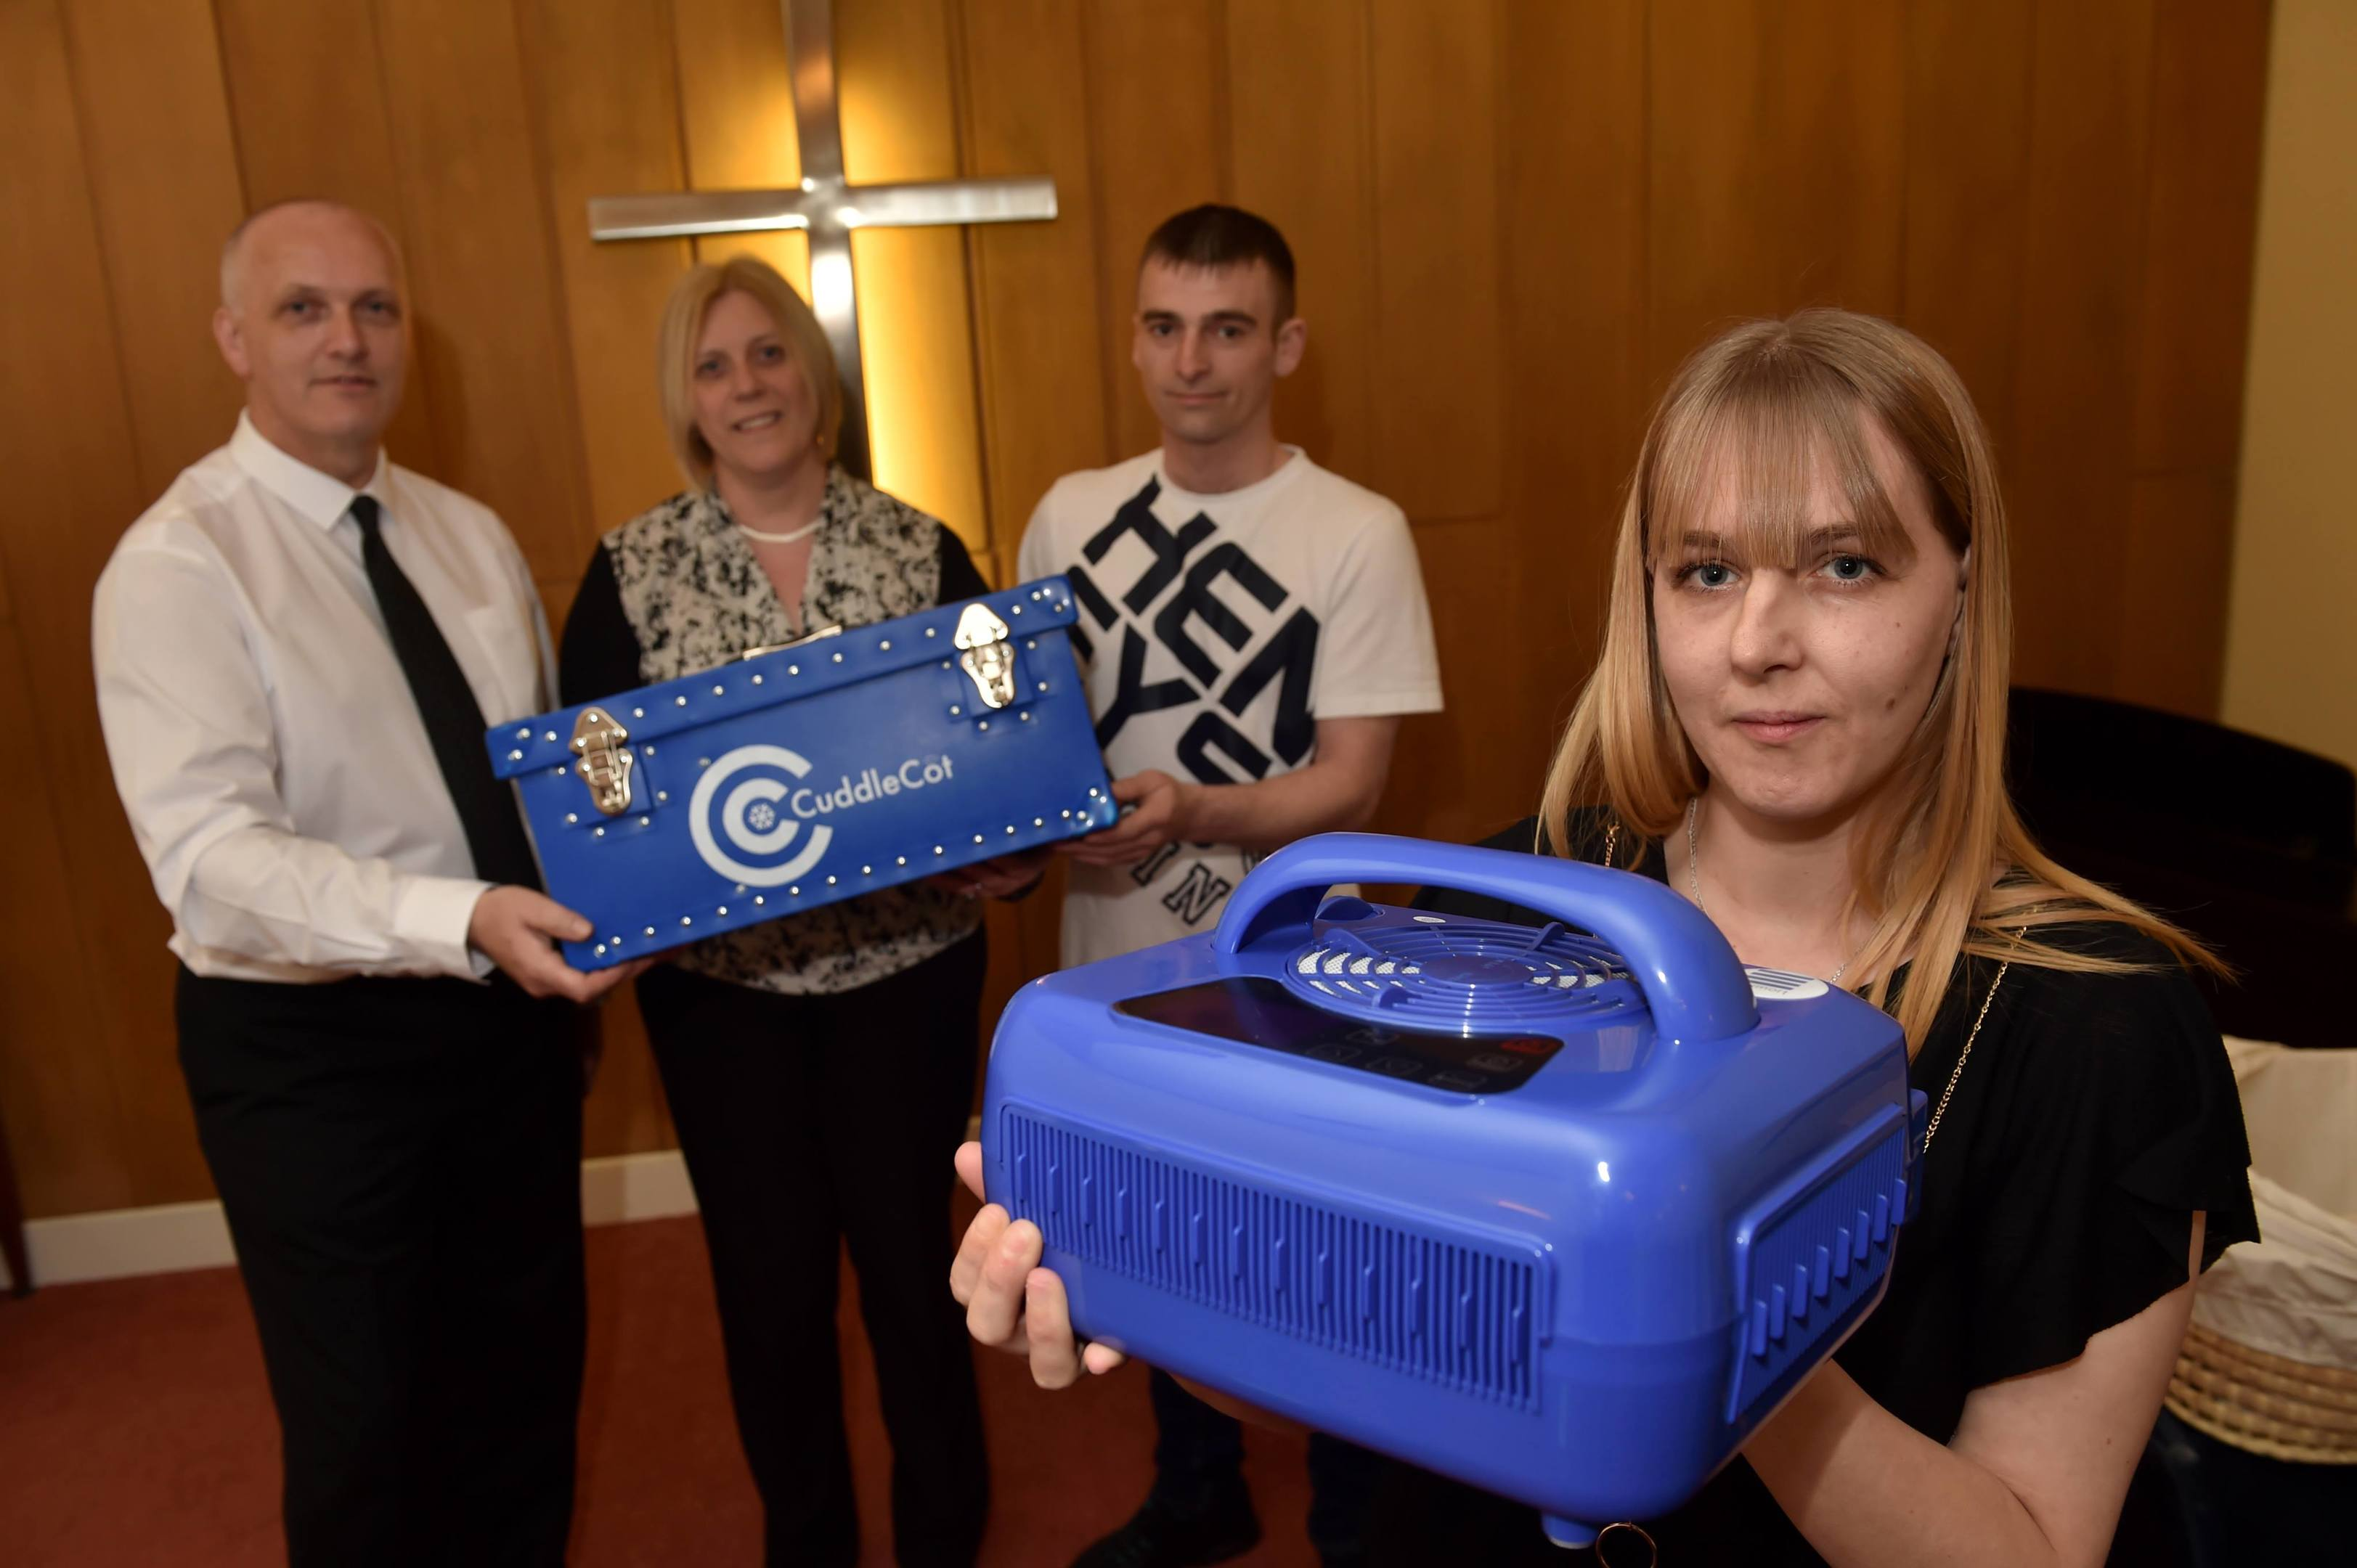 Michelle Annand presented a Cuddle Cot to Gordon & Watson Funeral Home, which she herself fundraised